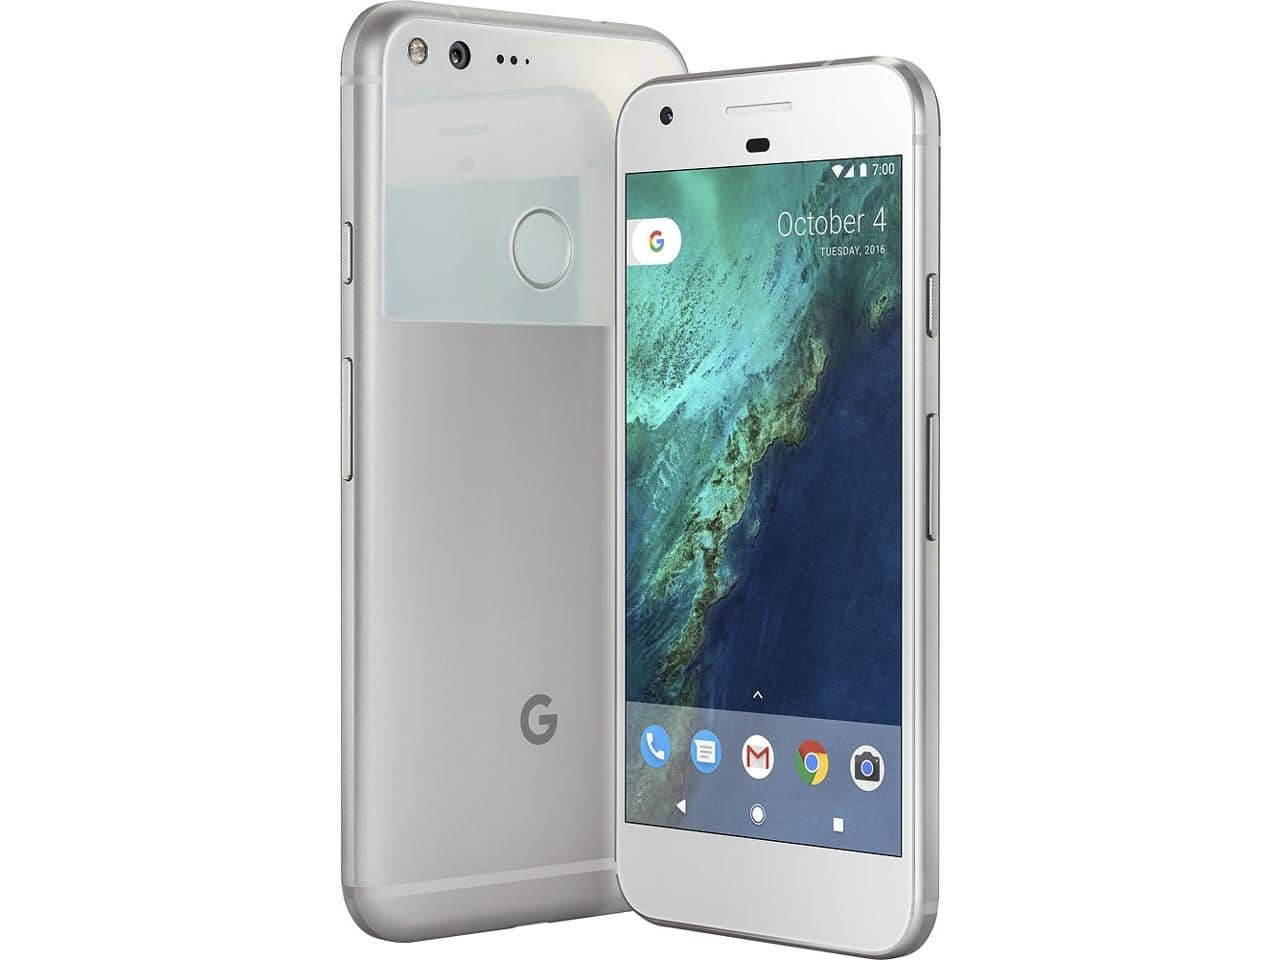 Google Pixel 32GB (Factory Unlocked) 5-inch 12.3MP Android Smartphone $419